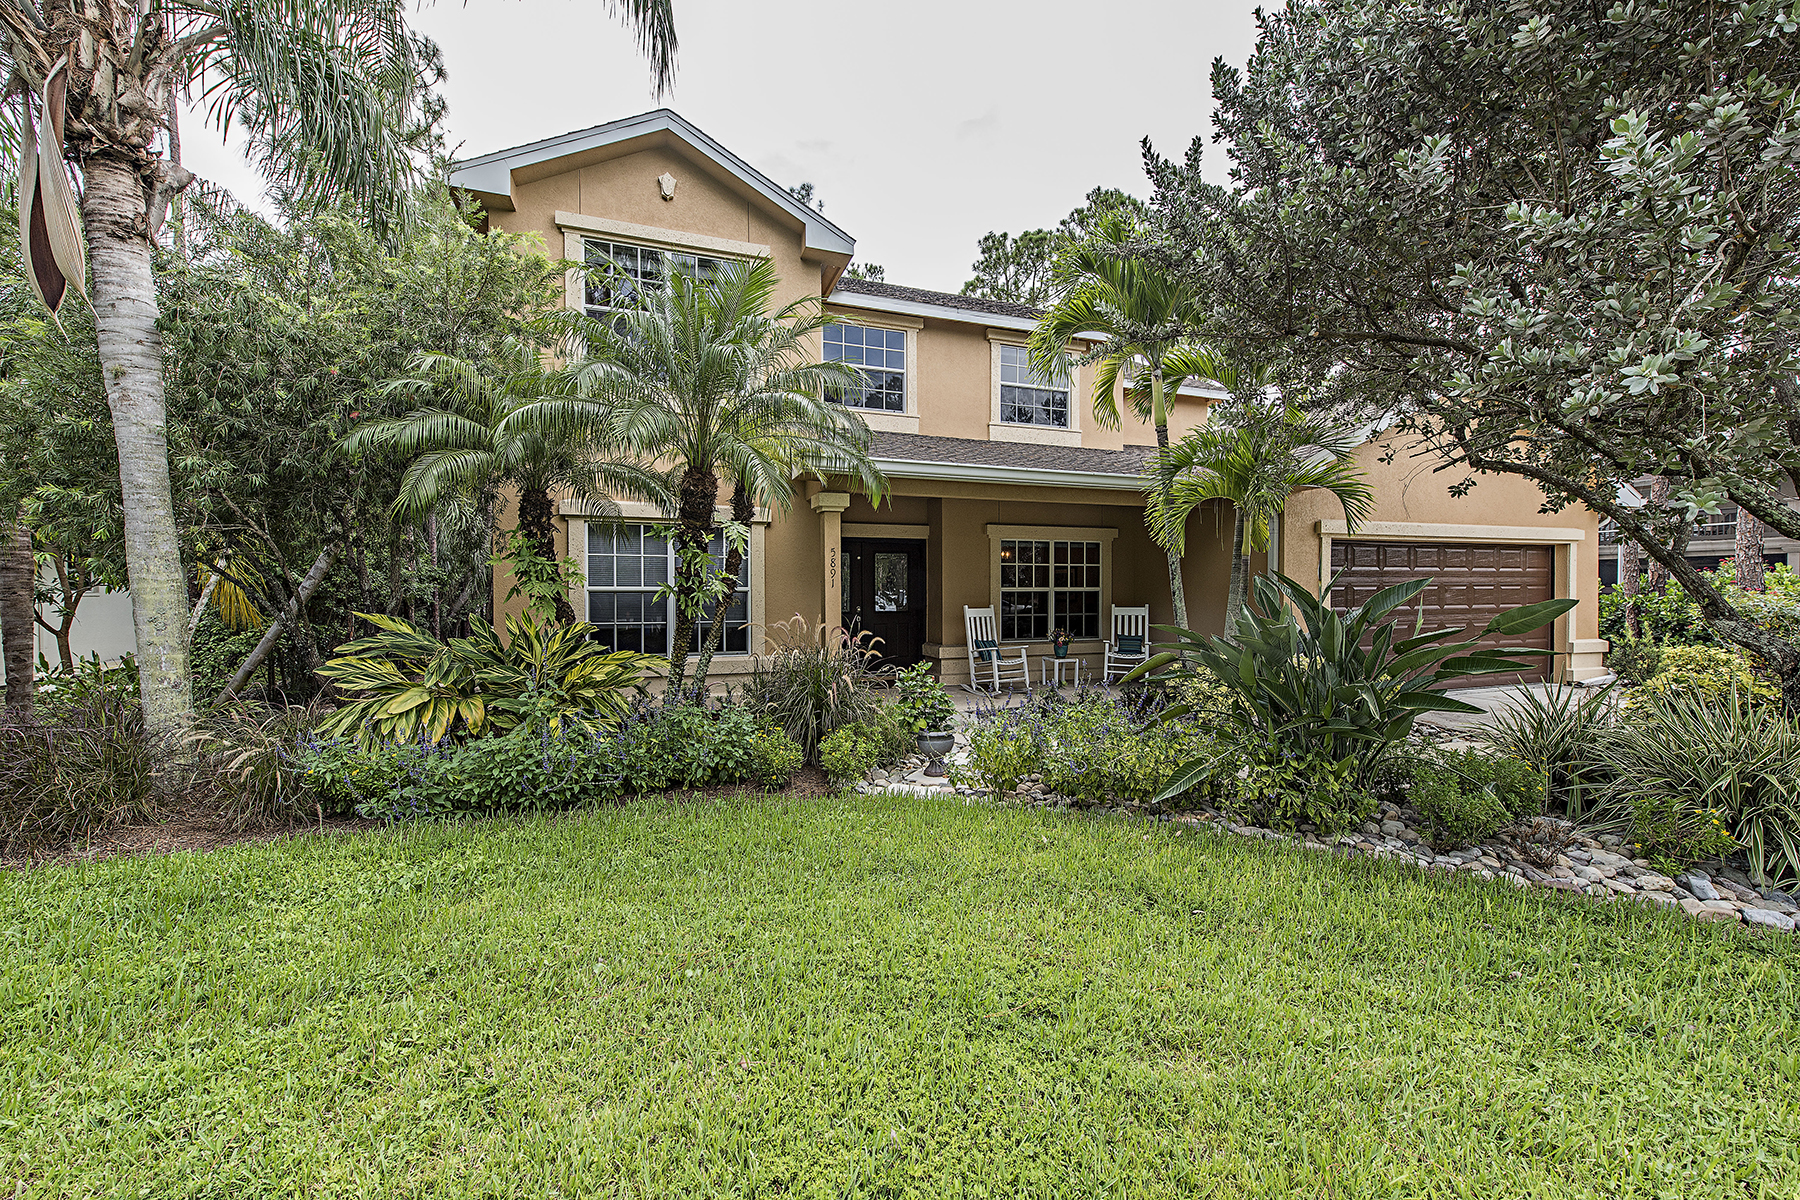 Single Family Home for Sale at TALL PINES 5891 Waxmyrtle Way Naples, Florida, 34109 United States